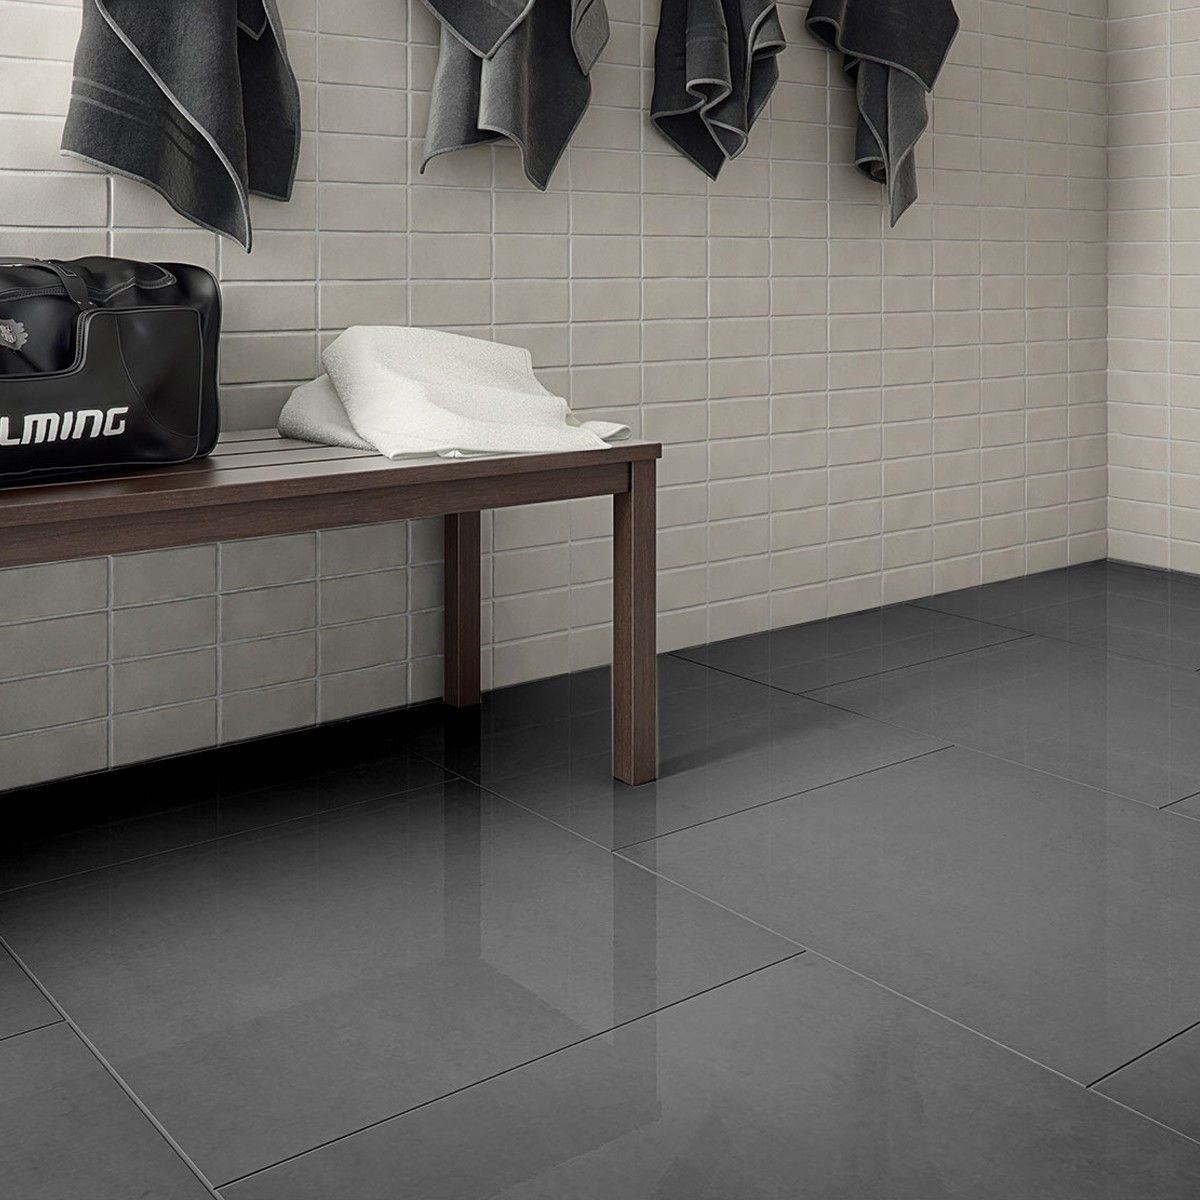 Crown tiles online shop stocks large ranges of tiles tiles for crown tiles online shop stocks large ranges of tiles tiles for walls floors dailygadgetfo Image collections